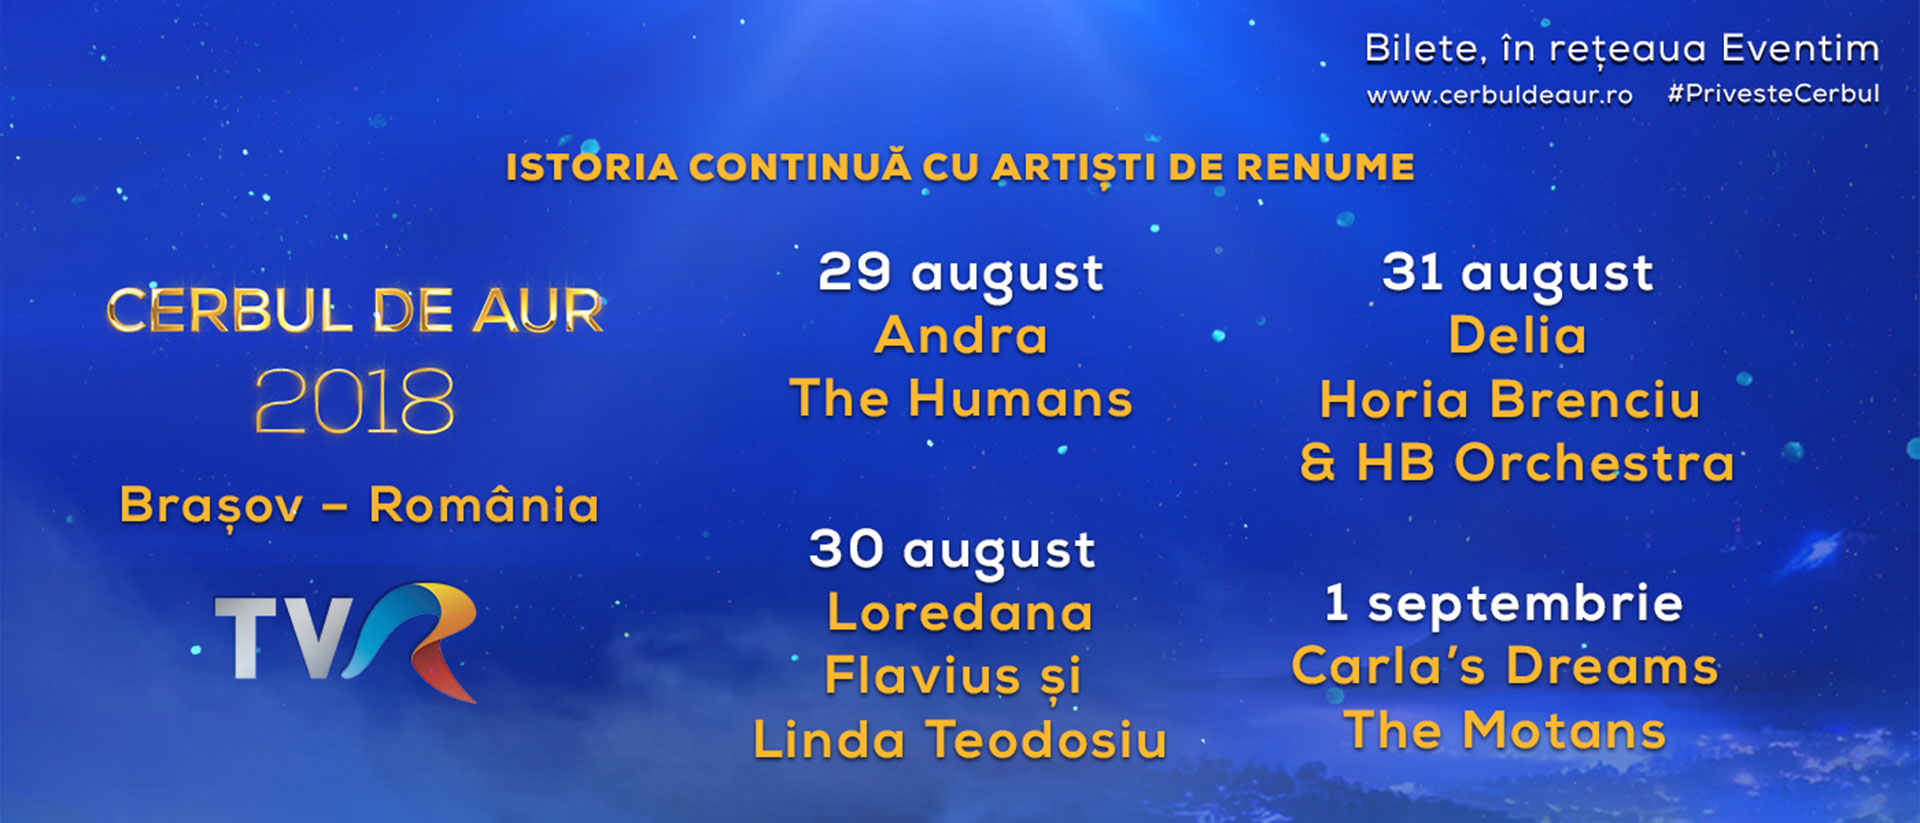 Concert romanian singers and bands, Cerbul de Aur 2018